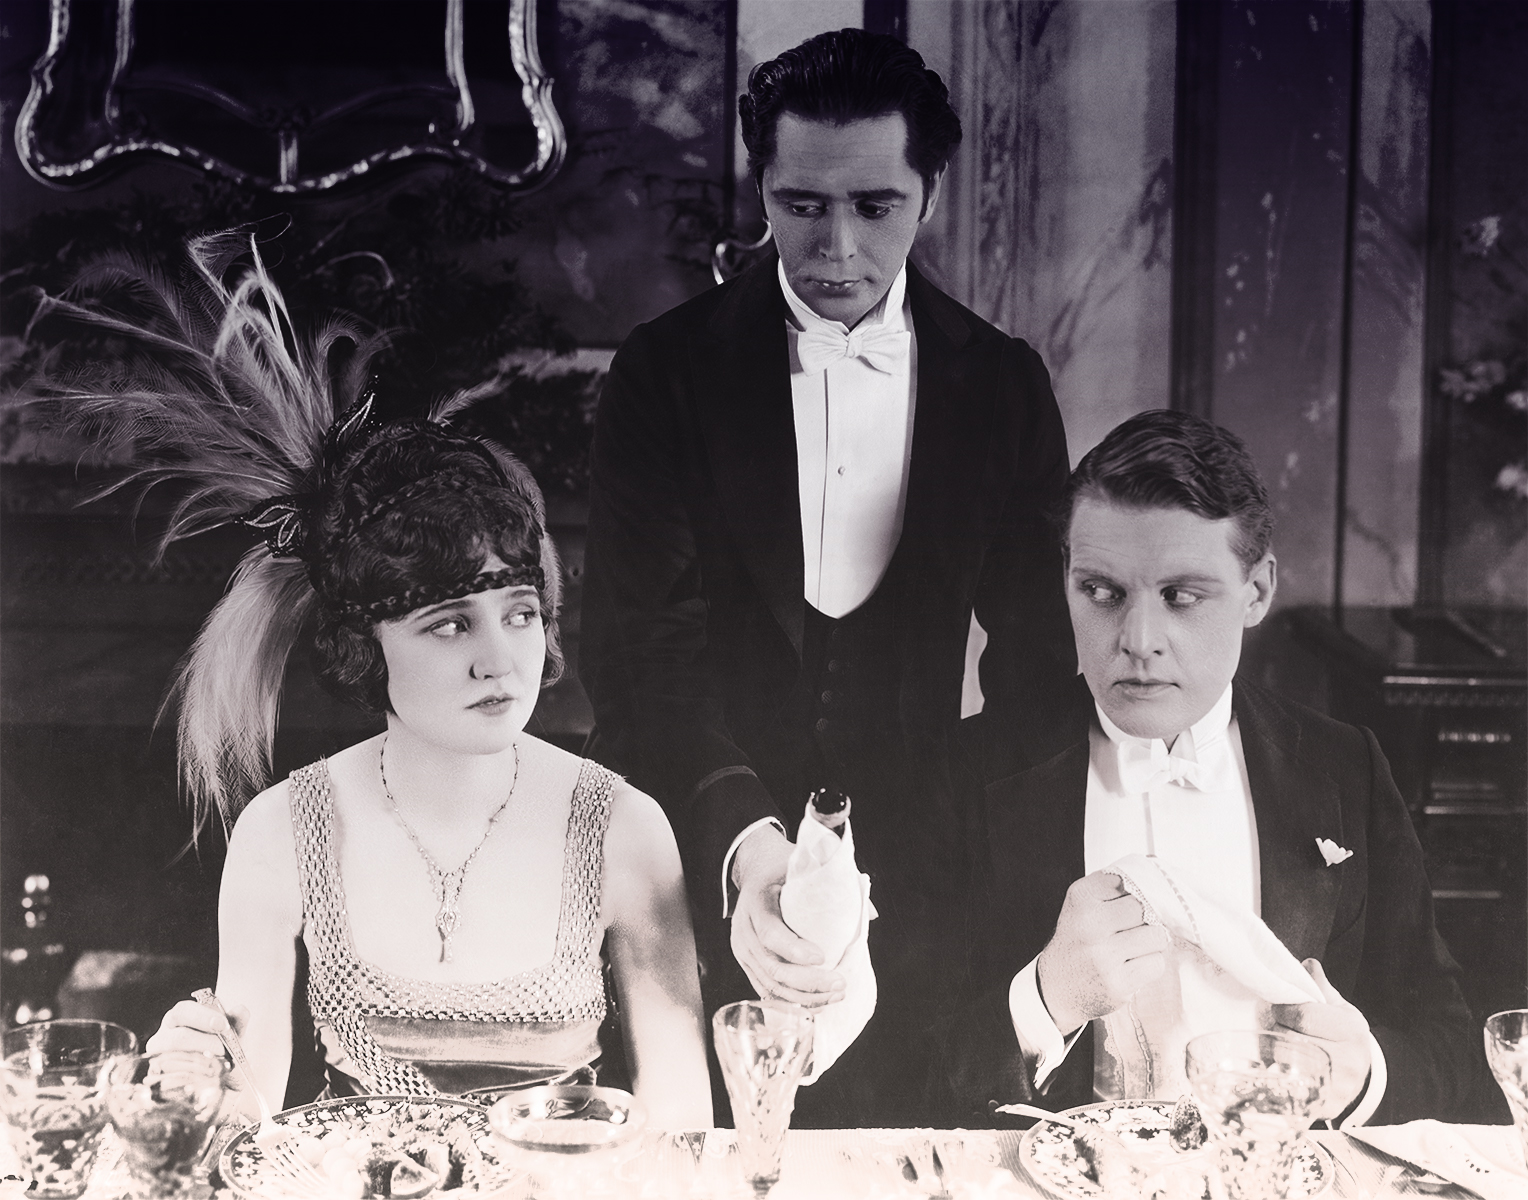 A man and a woman dressed up for a 1920s dinner party give each other the side eye as a waiter reaches between them awkwardly to refill their wine.